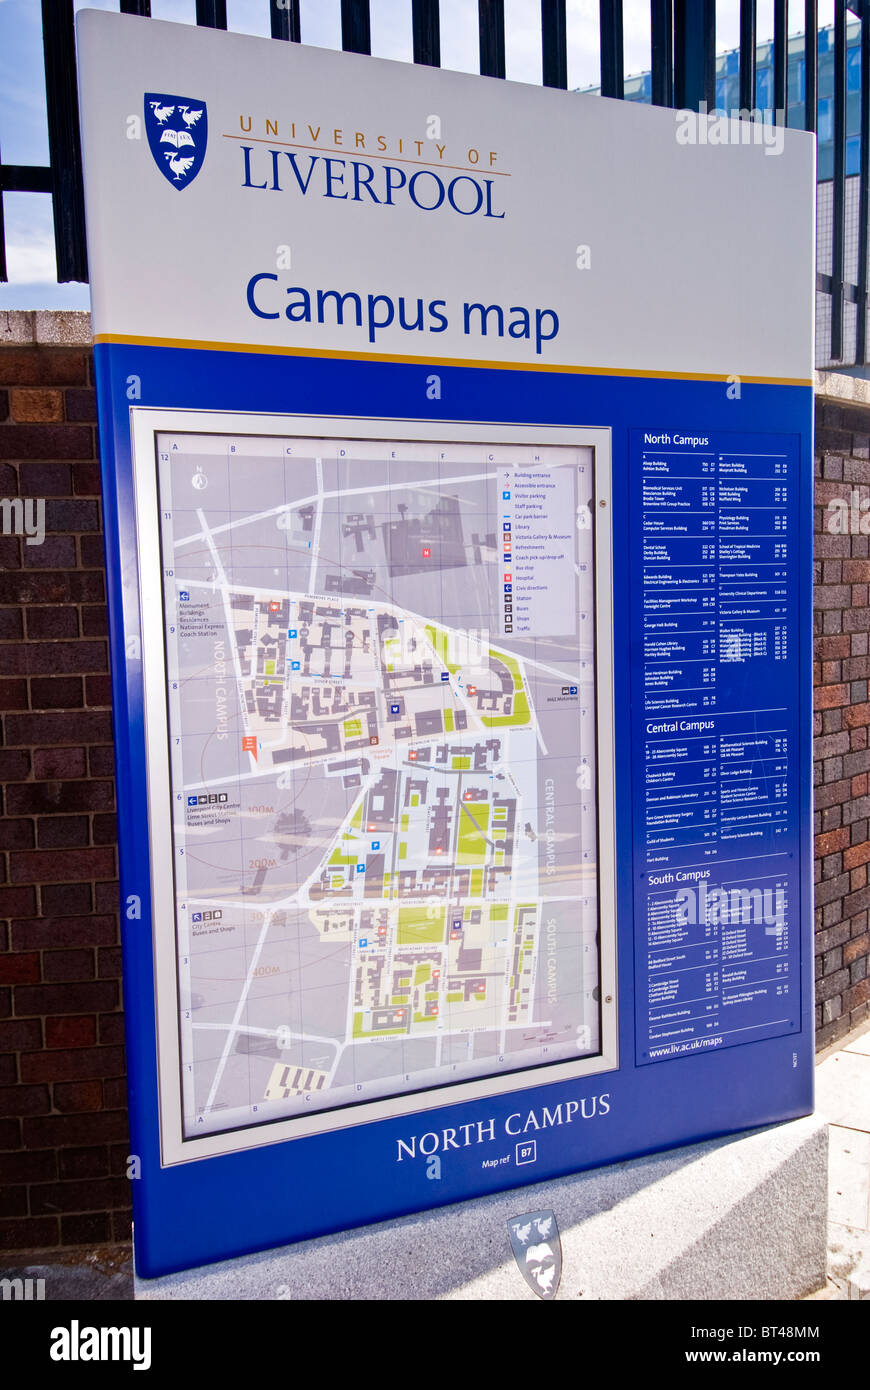 University Of Liverpool Campus Map Map of University of Liverpool campus, Liverpool, England, UK